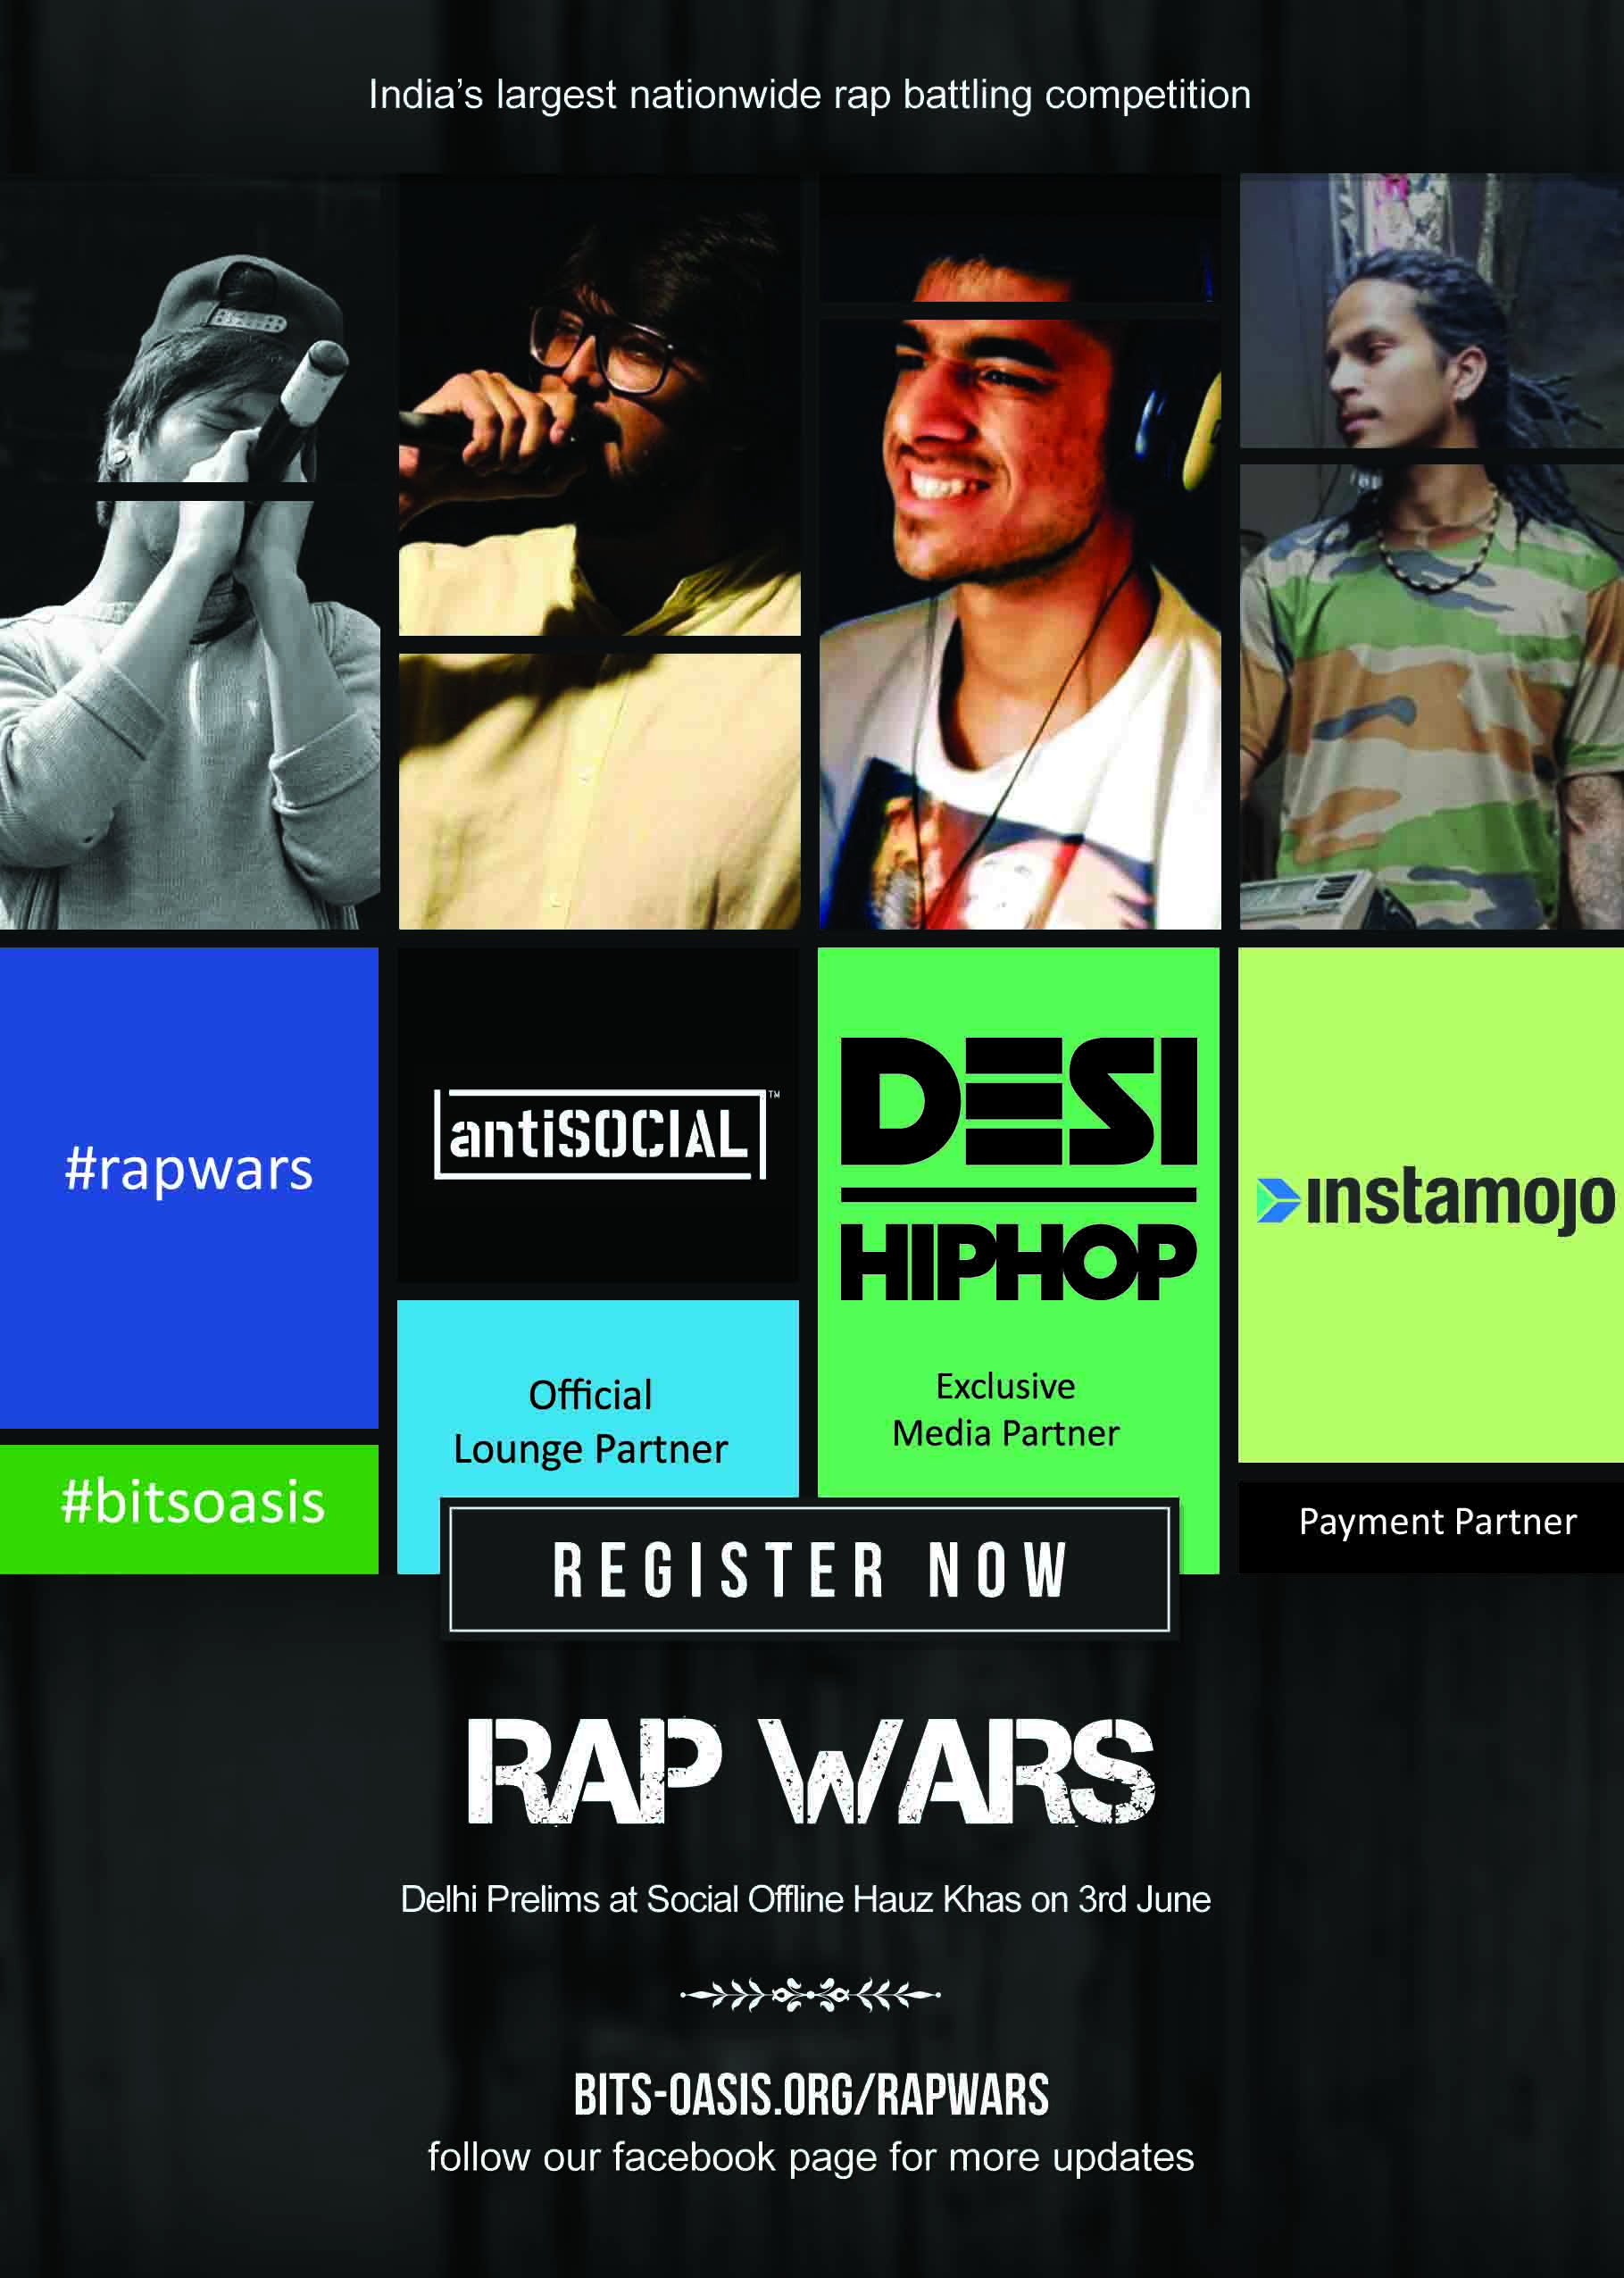 Epic Rap Battles of BITS Pilani - Delhi Prelims